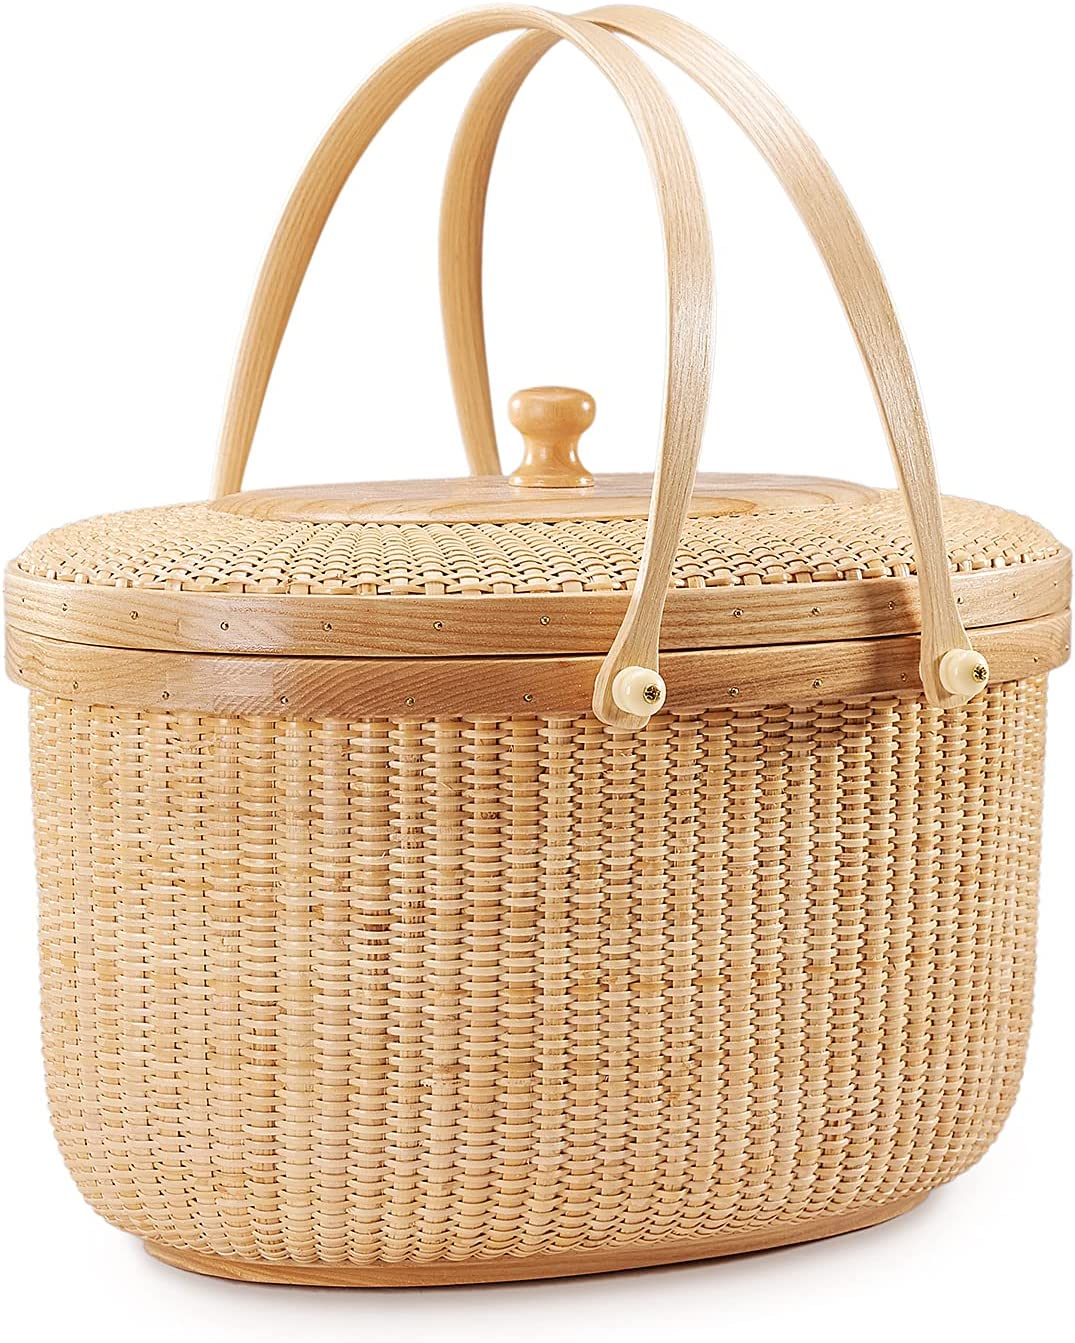 Teng Jin Nantucket Sewing Basket Wood Hand 40% OFF Cheap Sale Dual Minneapolis Mall Containers with